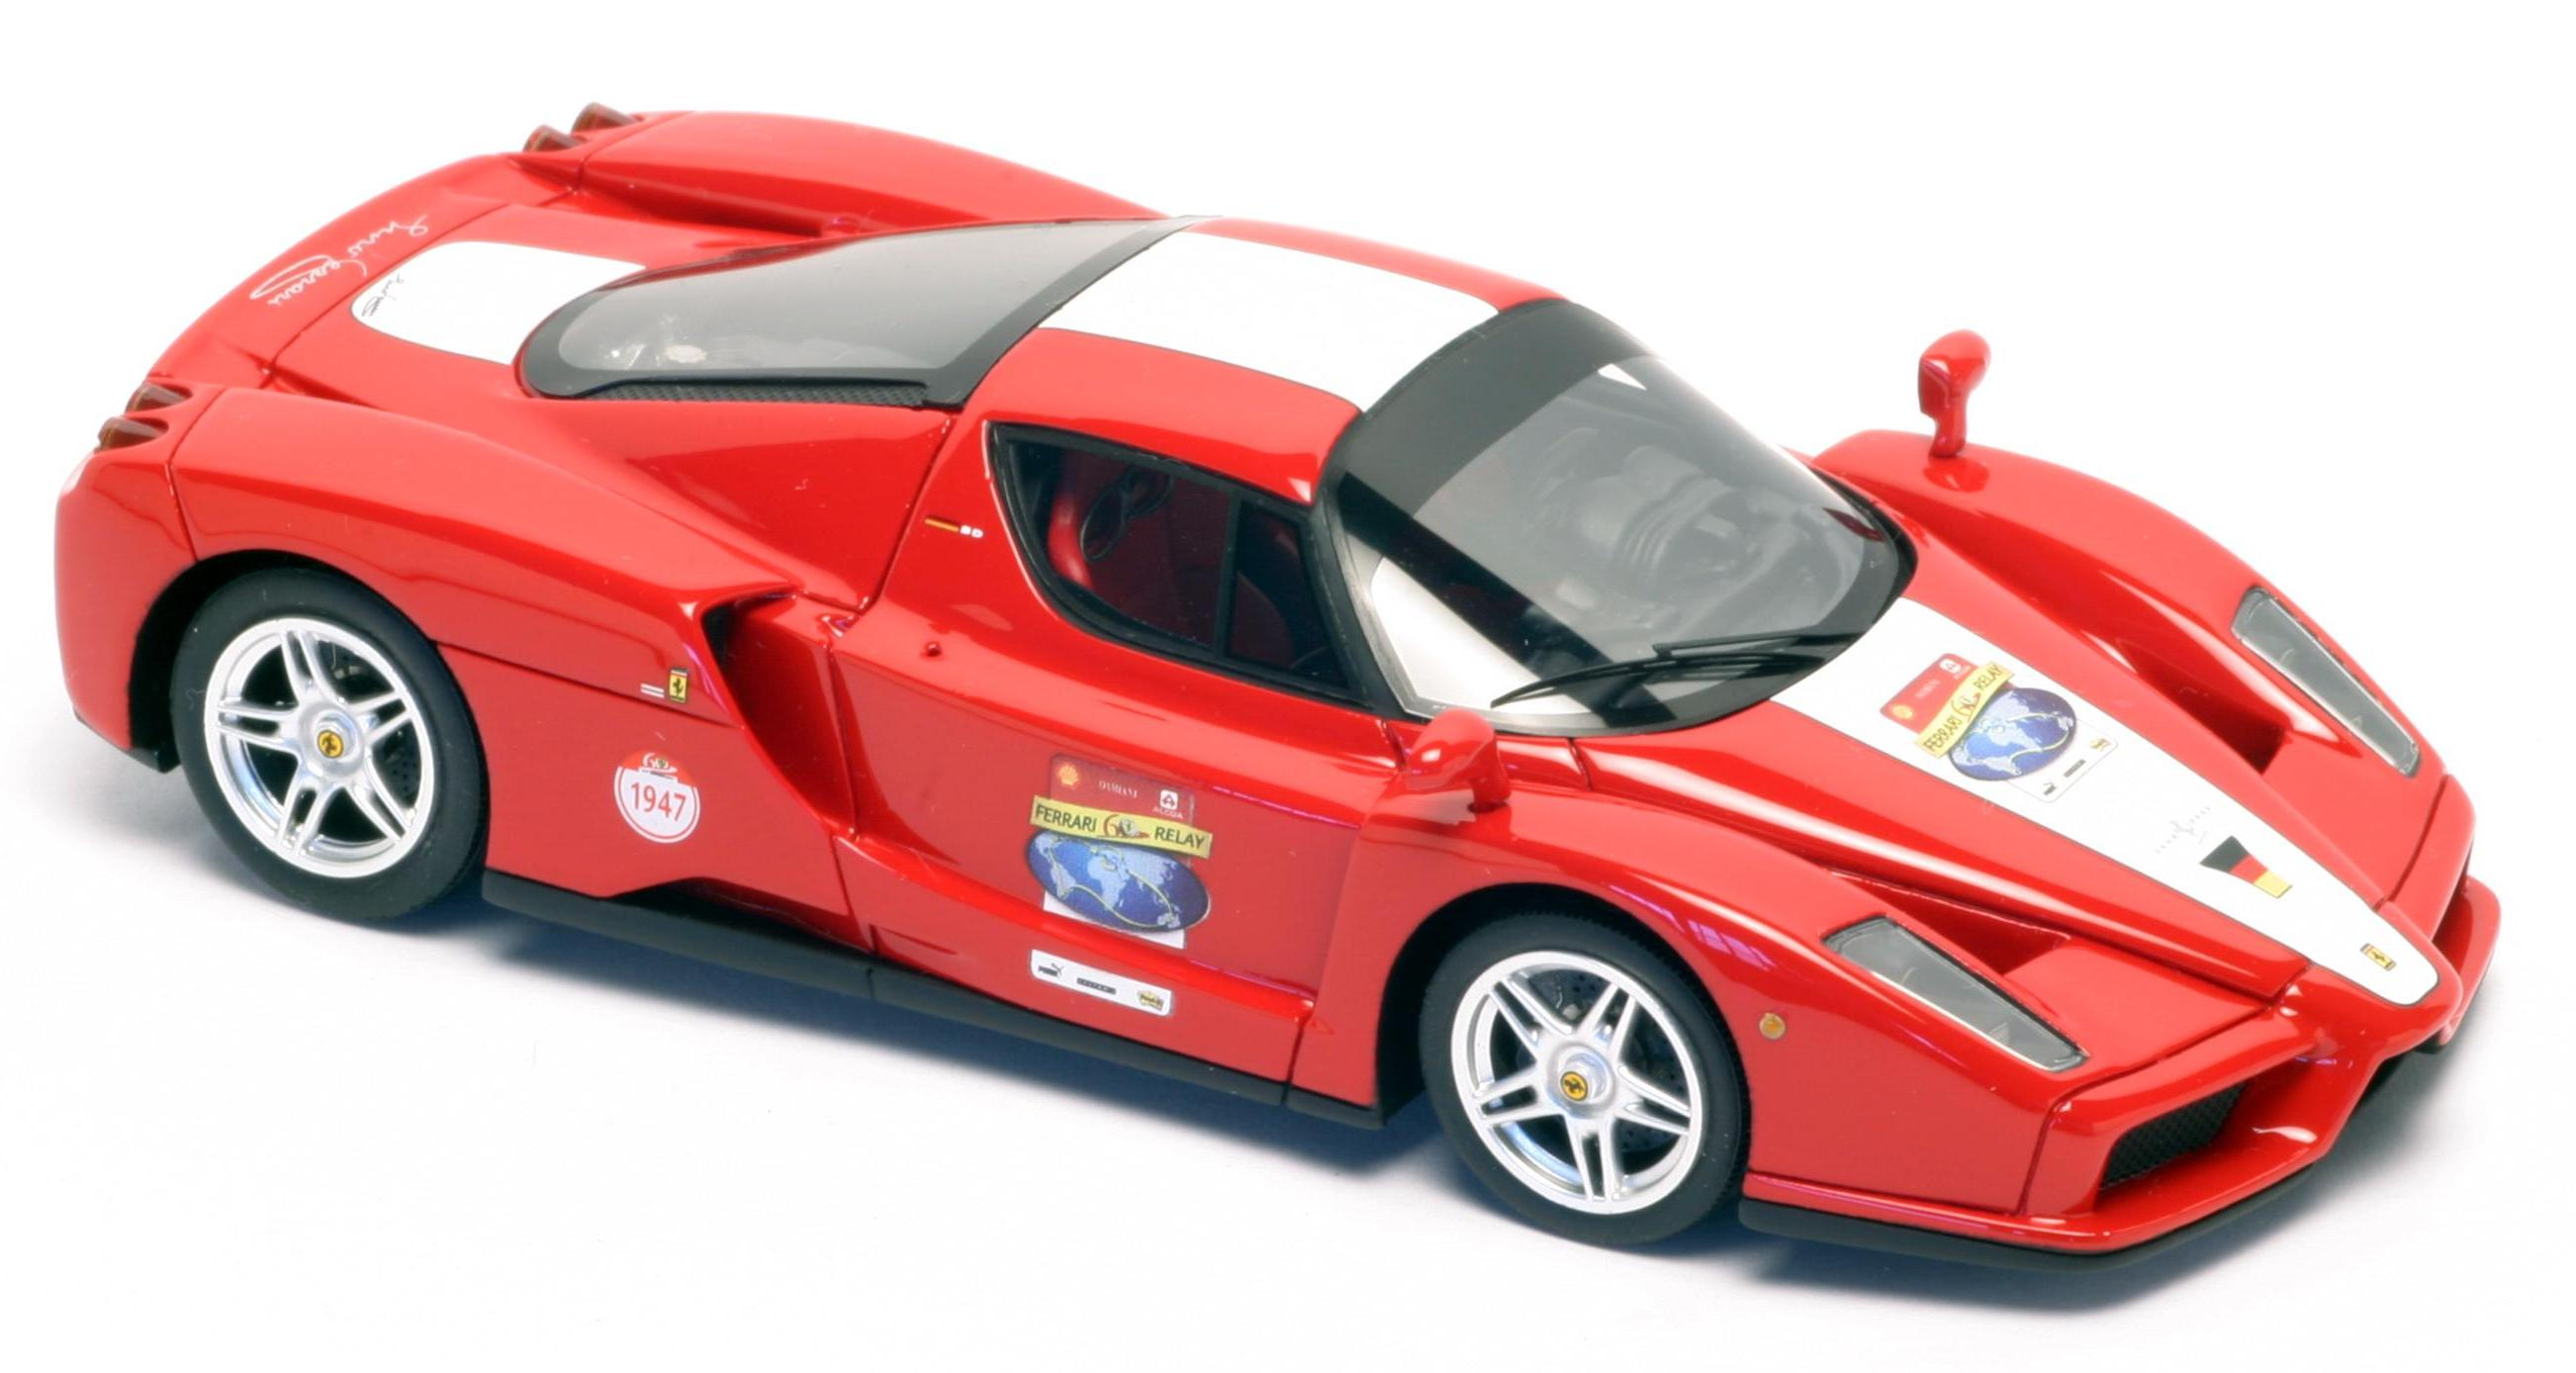 Bbr models 2007 ferrari enzo 60 relay 23 june 2007 bbr150g in 1 bbr models 2007 ferrari enzo 60 relay 23 june 2007 bbr150g in 1 vanachro Image collections